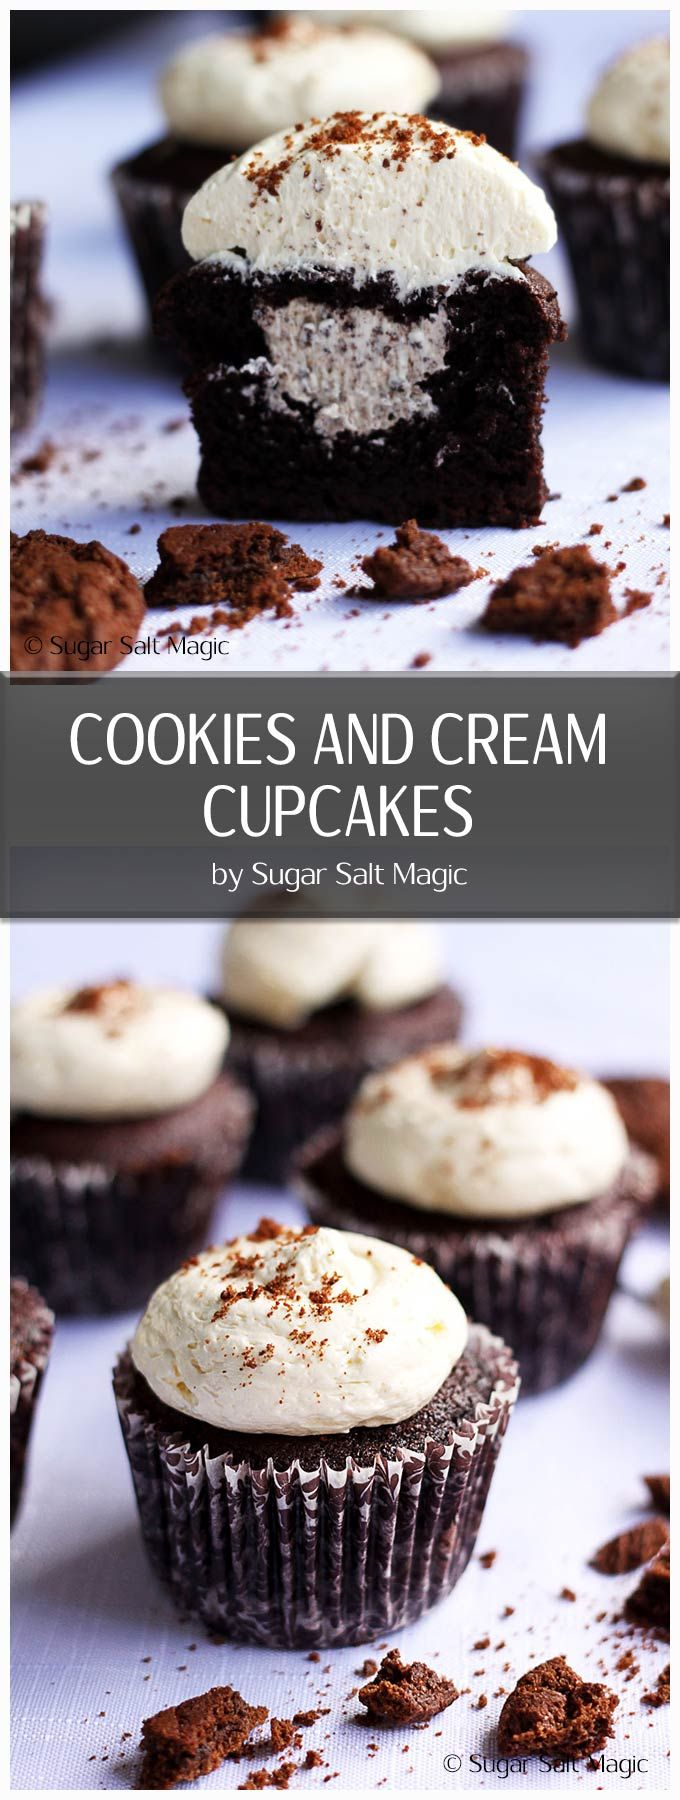 These Cookies and Cream Cupcakes are moist, perfect chocolate cupcakes with a creamy ermine buttercream frosting, creamy filling and a biscuit base. #chocolatecupcakes #cookiesandcream via @sugarsaltmagic